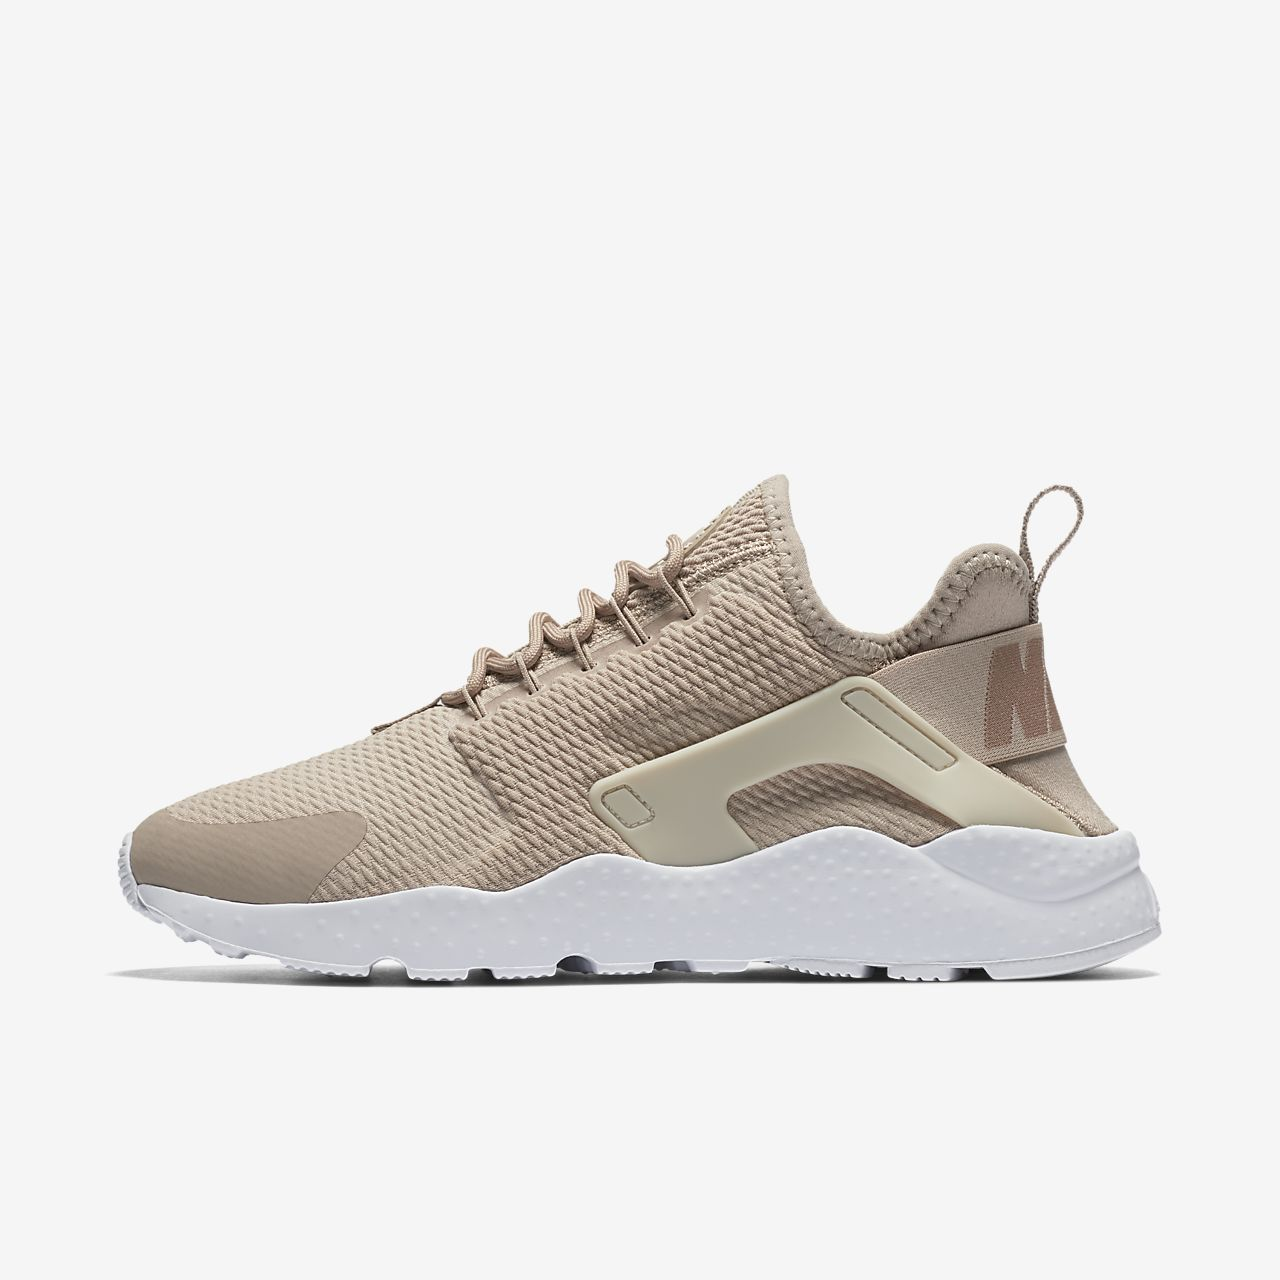 50% price well known outlet store sale Nike Air Huarache Ultra Women's Shoe. Nike.com